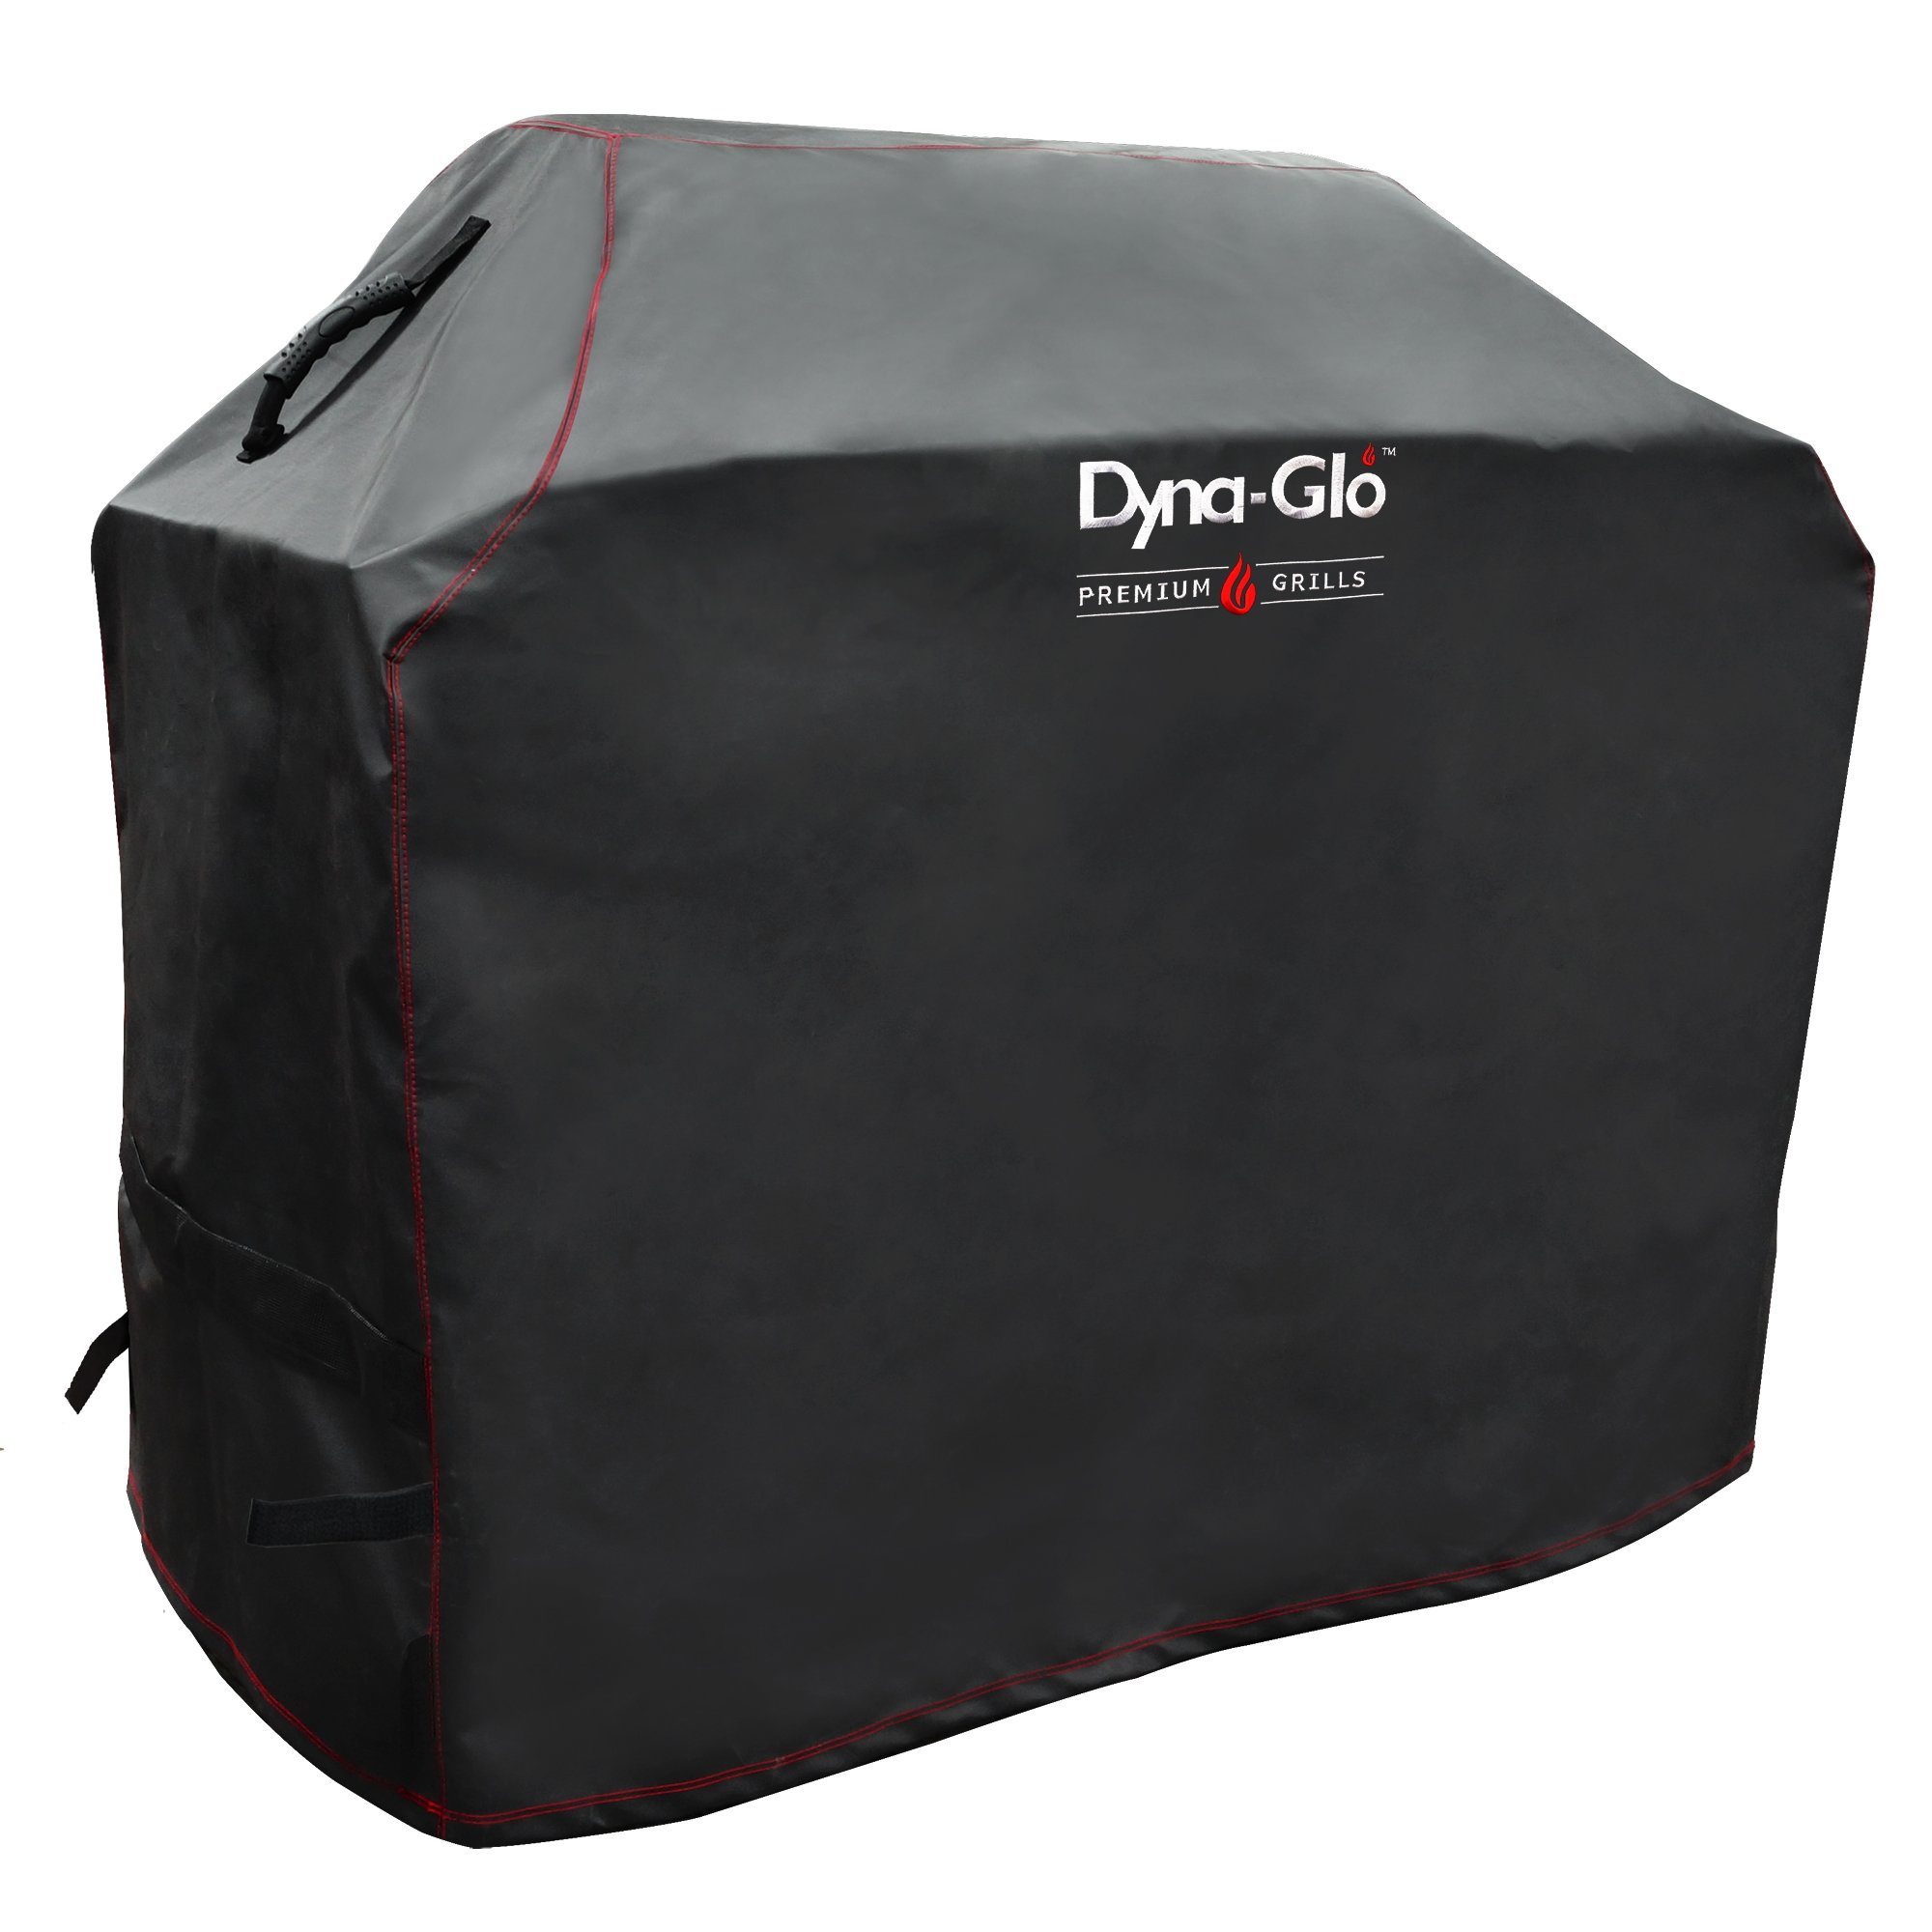 Dyna Glo DG500C Premium Grill Cover, Black, Large by Dyna-Glo